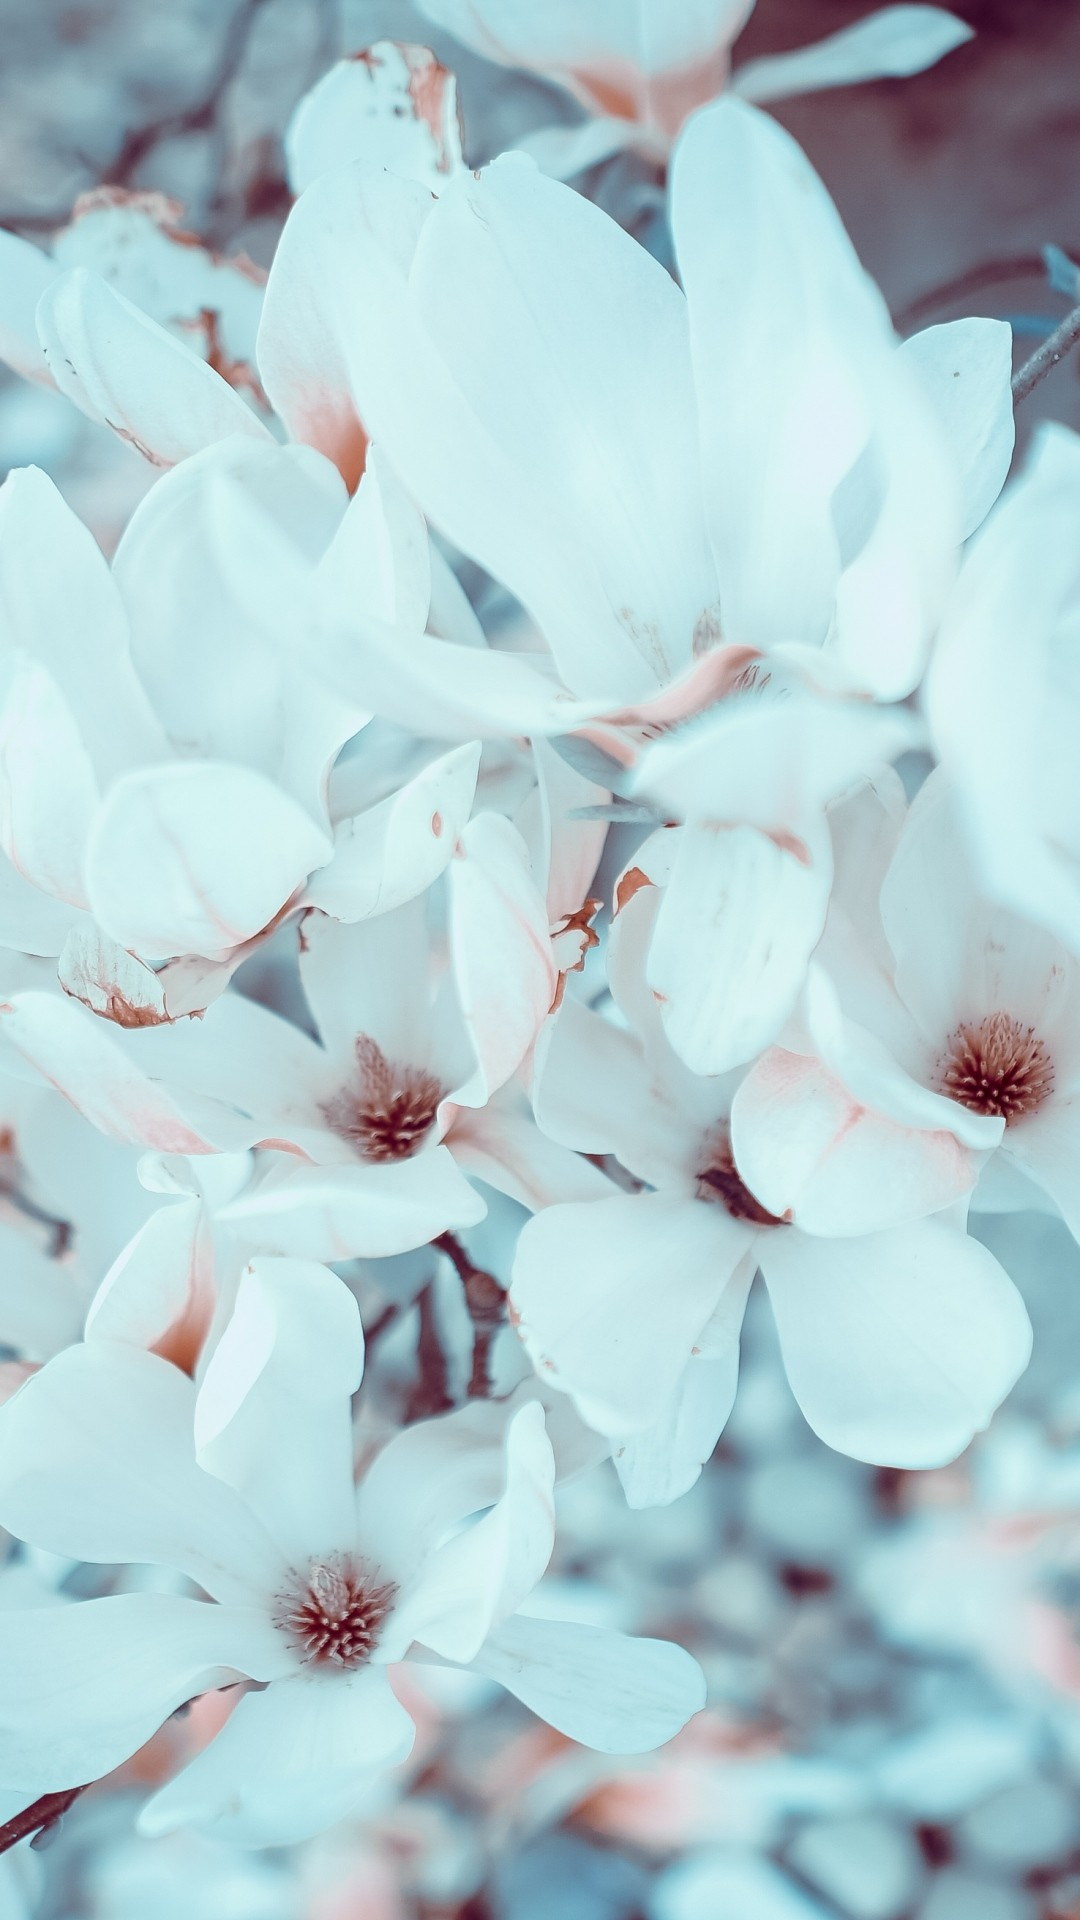 Free Magnolia Flowers phone wallpaper by csmhoward